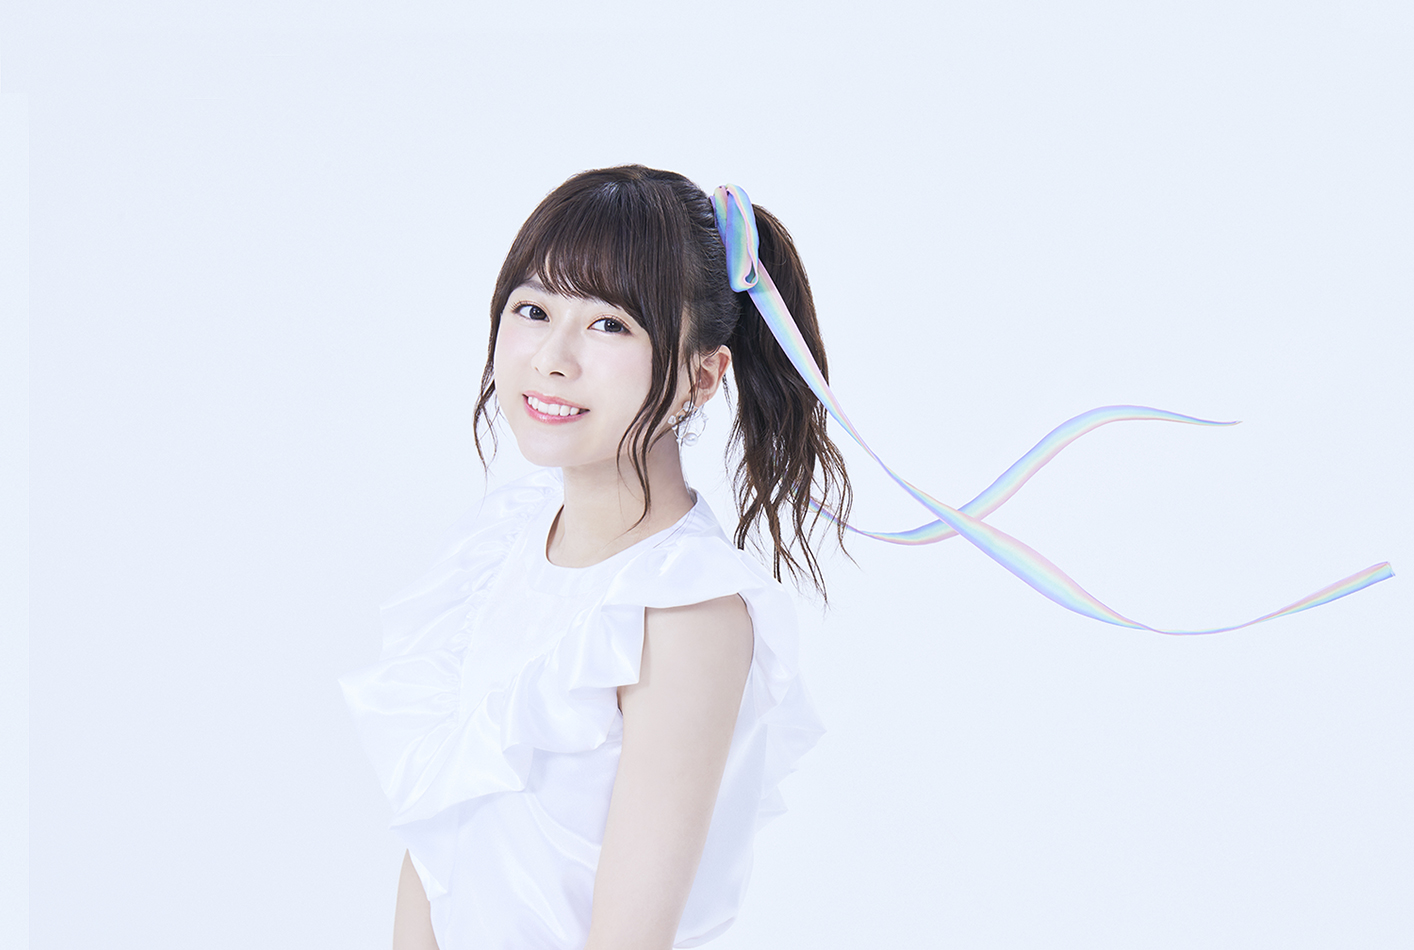 水瀬いのり OFFICIAL WEB SITE